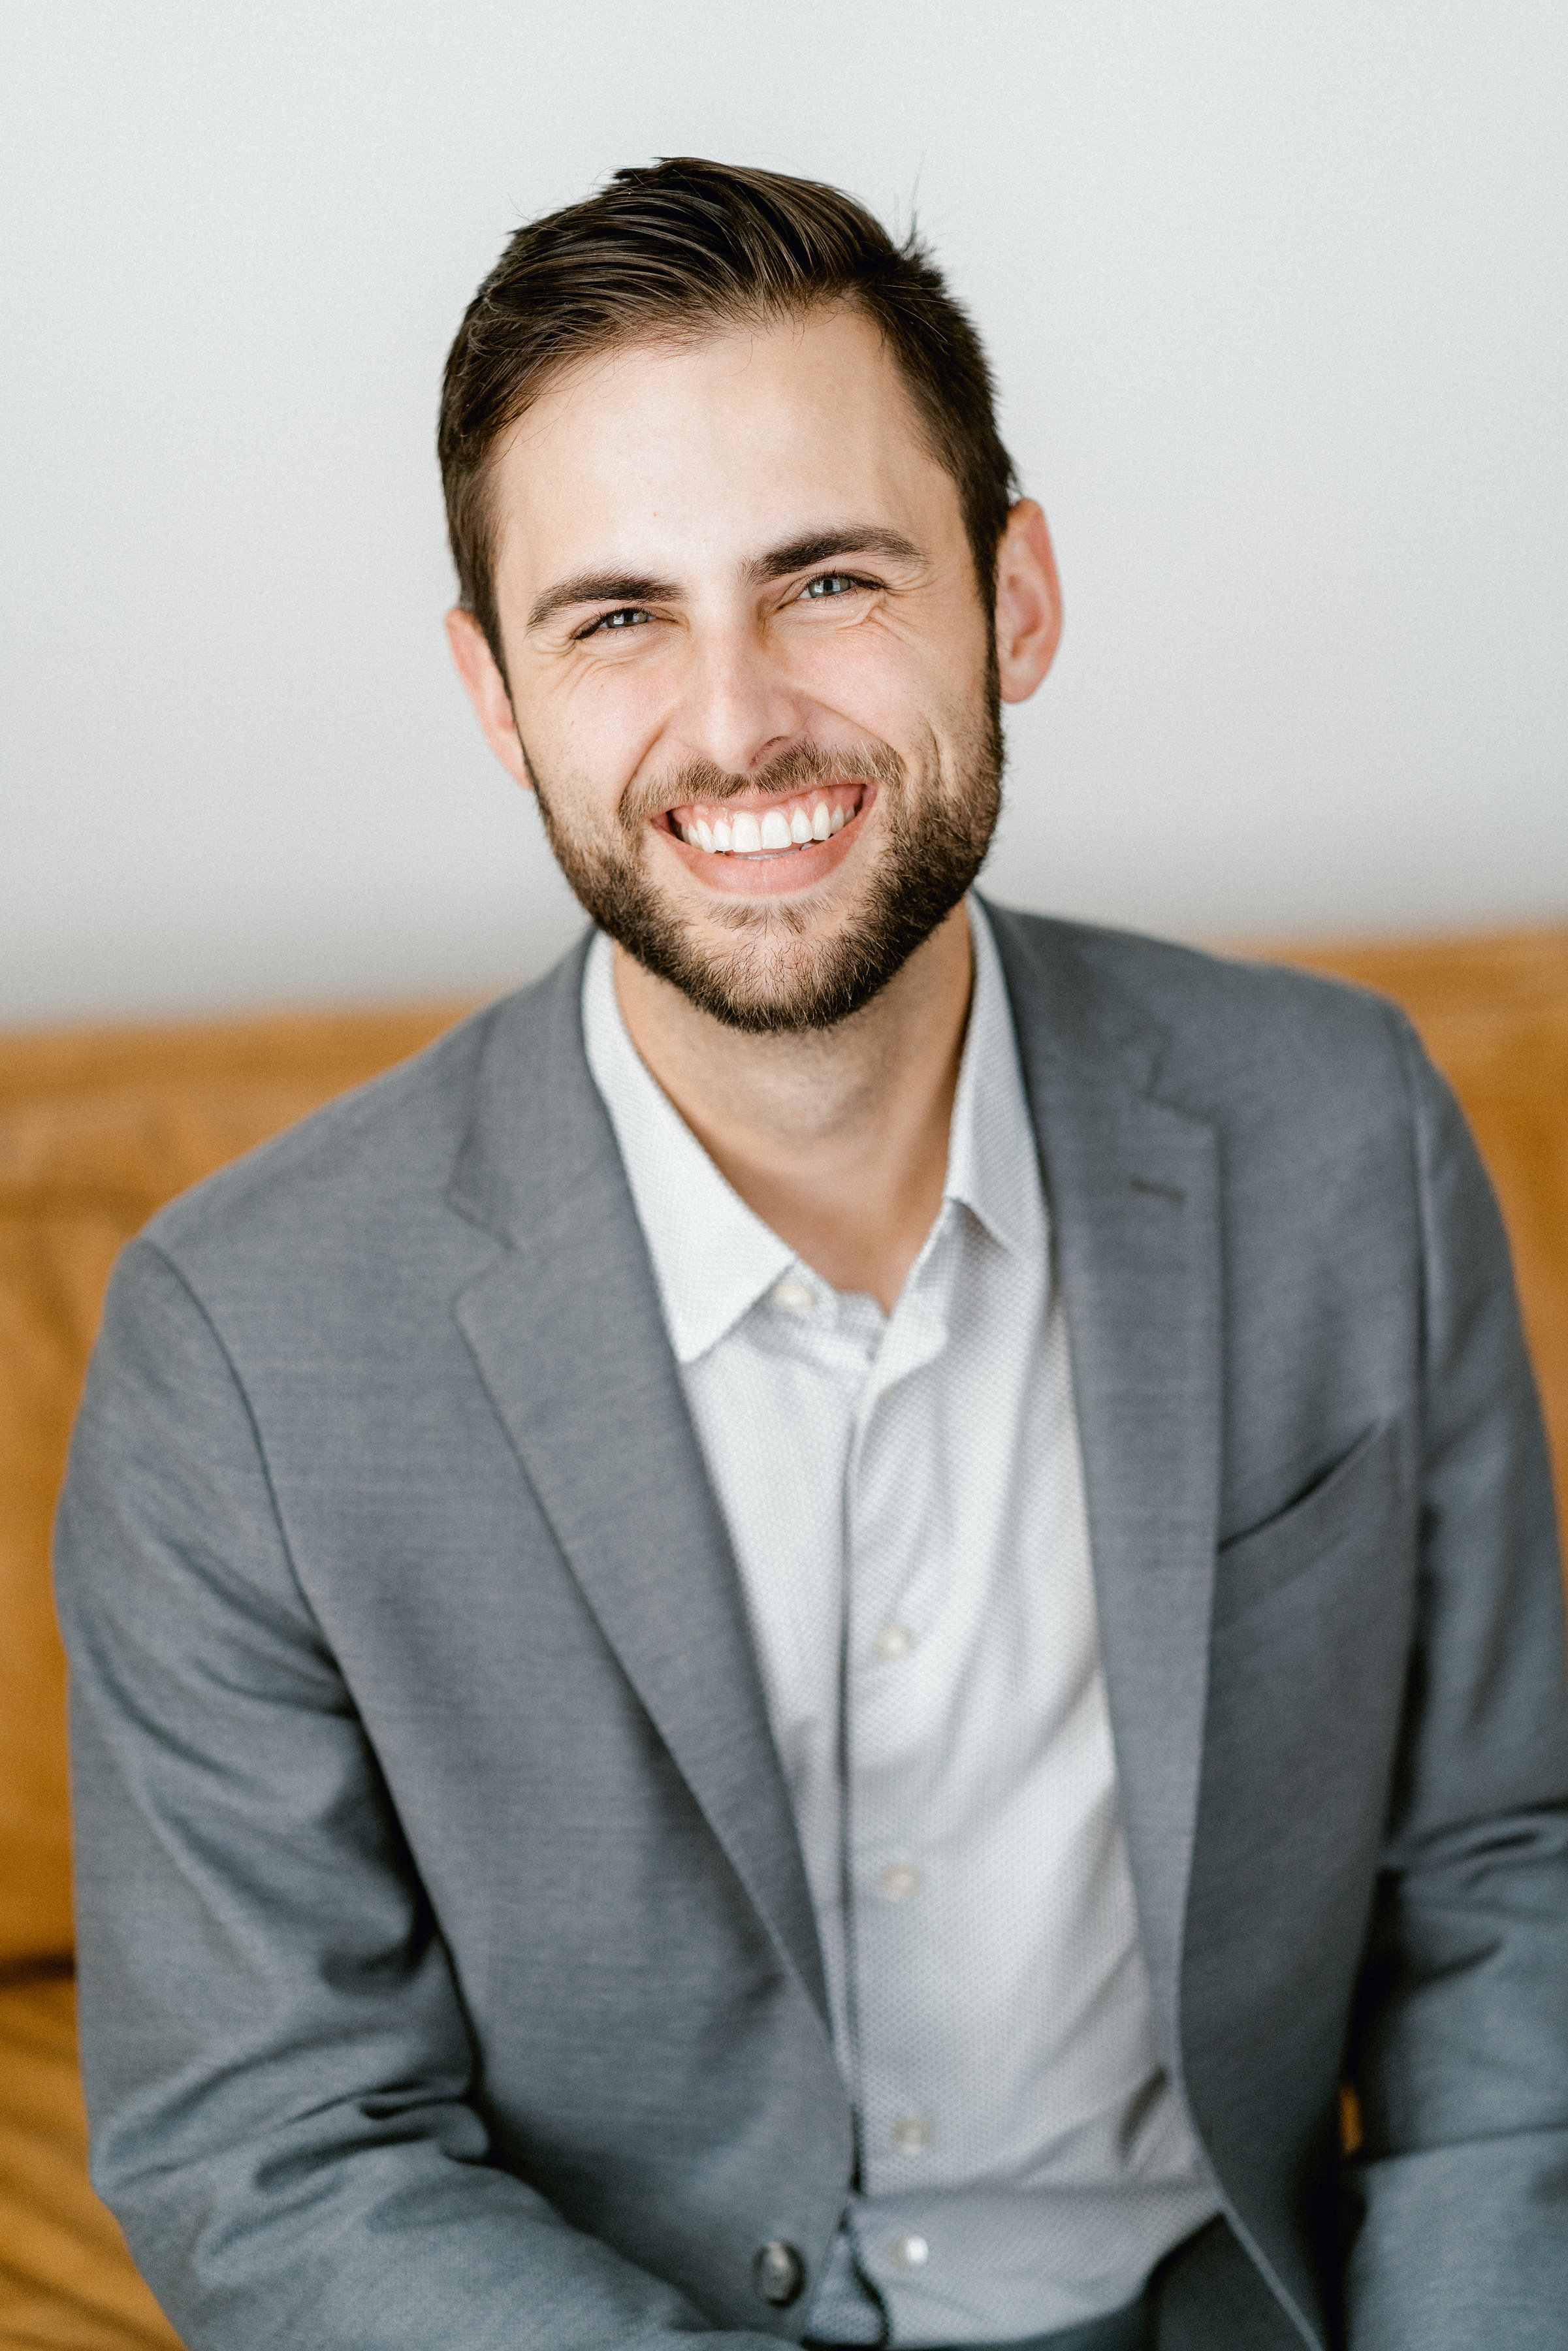 AUSTIN WYBLE - Hi there, my name is Austin and I am a realtor with Nail & Key. I got my real estate license back in mid-2017 and before that I was actually a full-time Catholic missionary working in youth ministry.The opportunity to work with such awesome people and serve my clients in a personal way was what ultimately brought me into this business. I love what I do and what it allows me to do! Some of my hobbies are rock climbing, playing intramural sports, hanging out with friends, watching movies, and trying new breweries.I got married to my lovely wife, Kimee, in August of 2018 and we now live in Lewisville. I have a passion for community because of everything my community has done for me throughout my life.I am proud to be a co-founder of Prodigal Projects; a nonprofit focused on building community and promoting dignity to those experiencing homelessness in Dallas. Nail & Key has been my dream job because we have made a point to focus on faith, family, and community in the workplace.Looking forward to bringing you into the family!